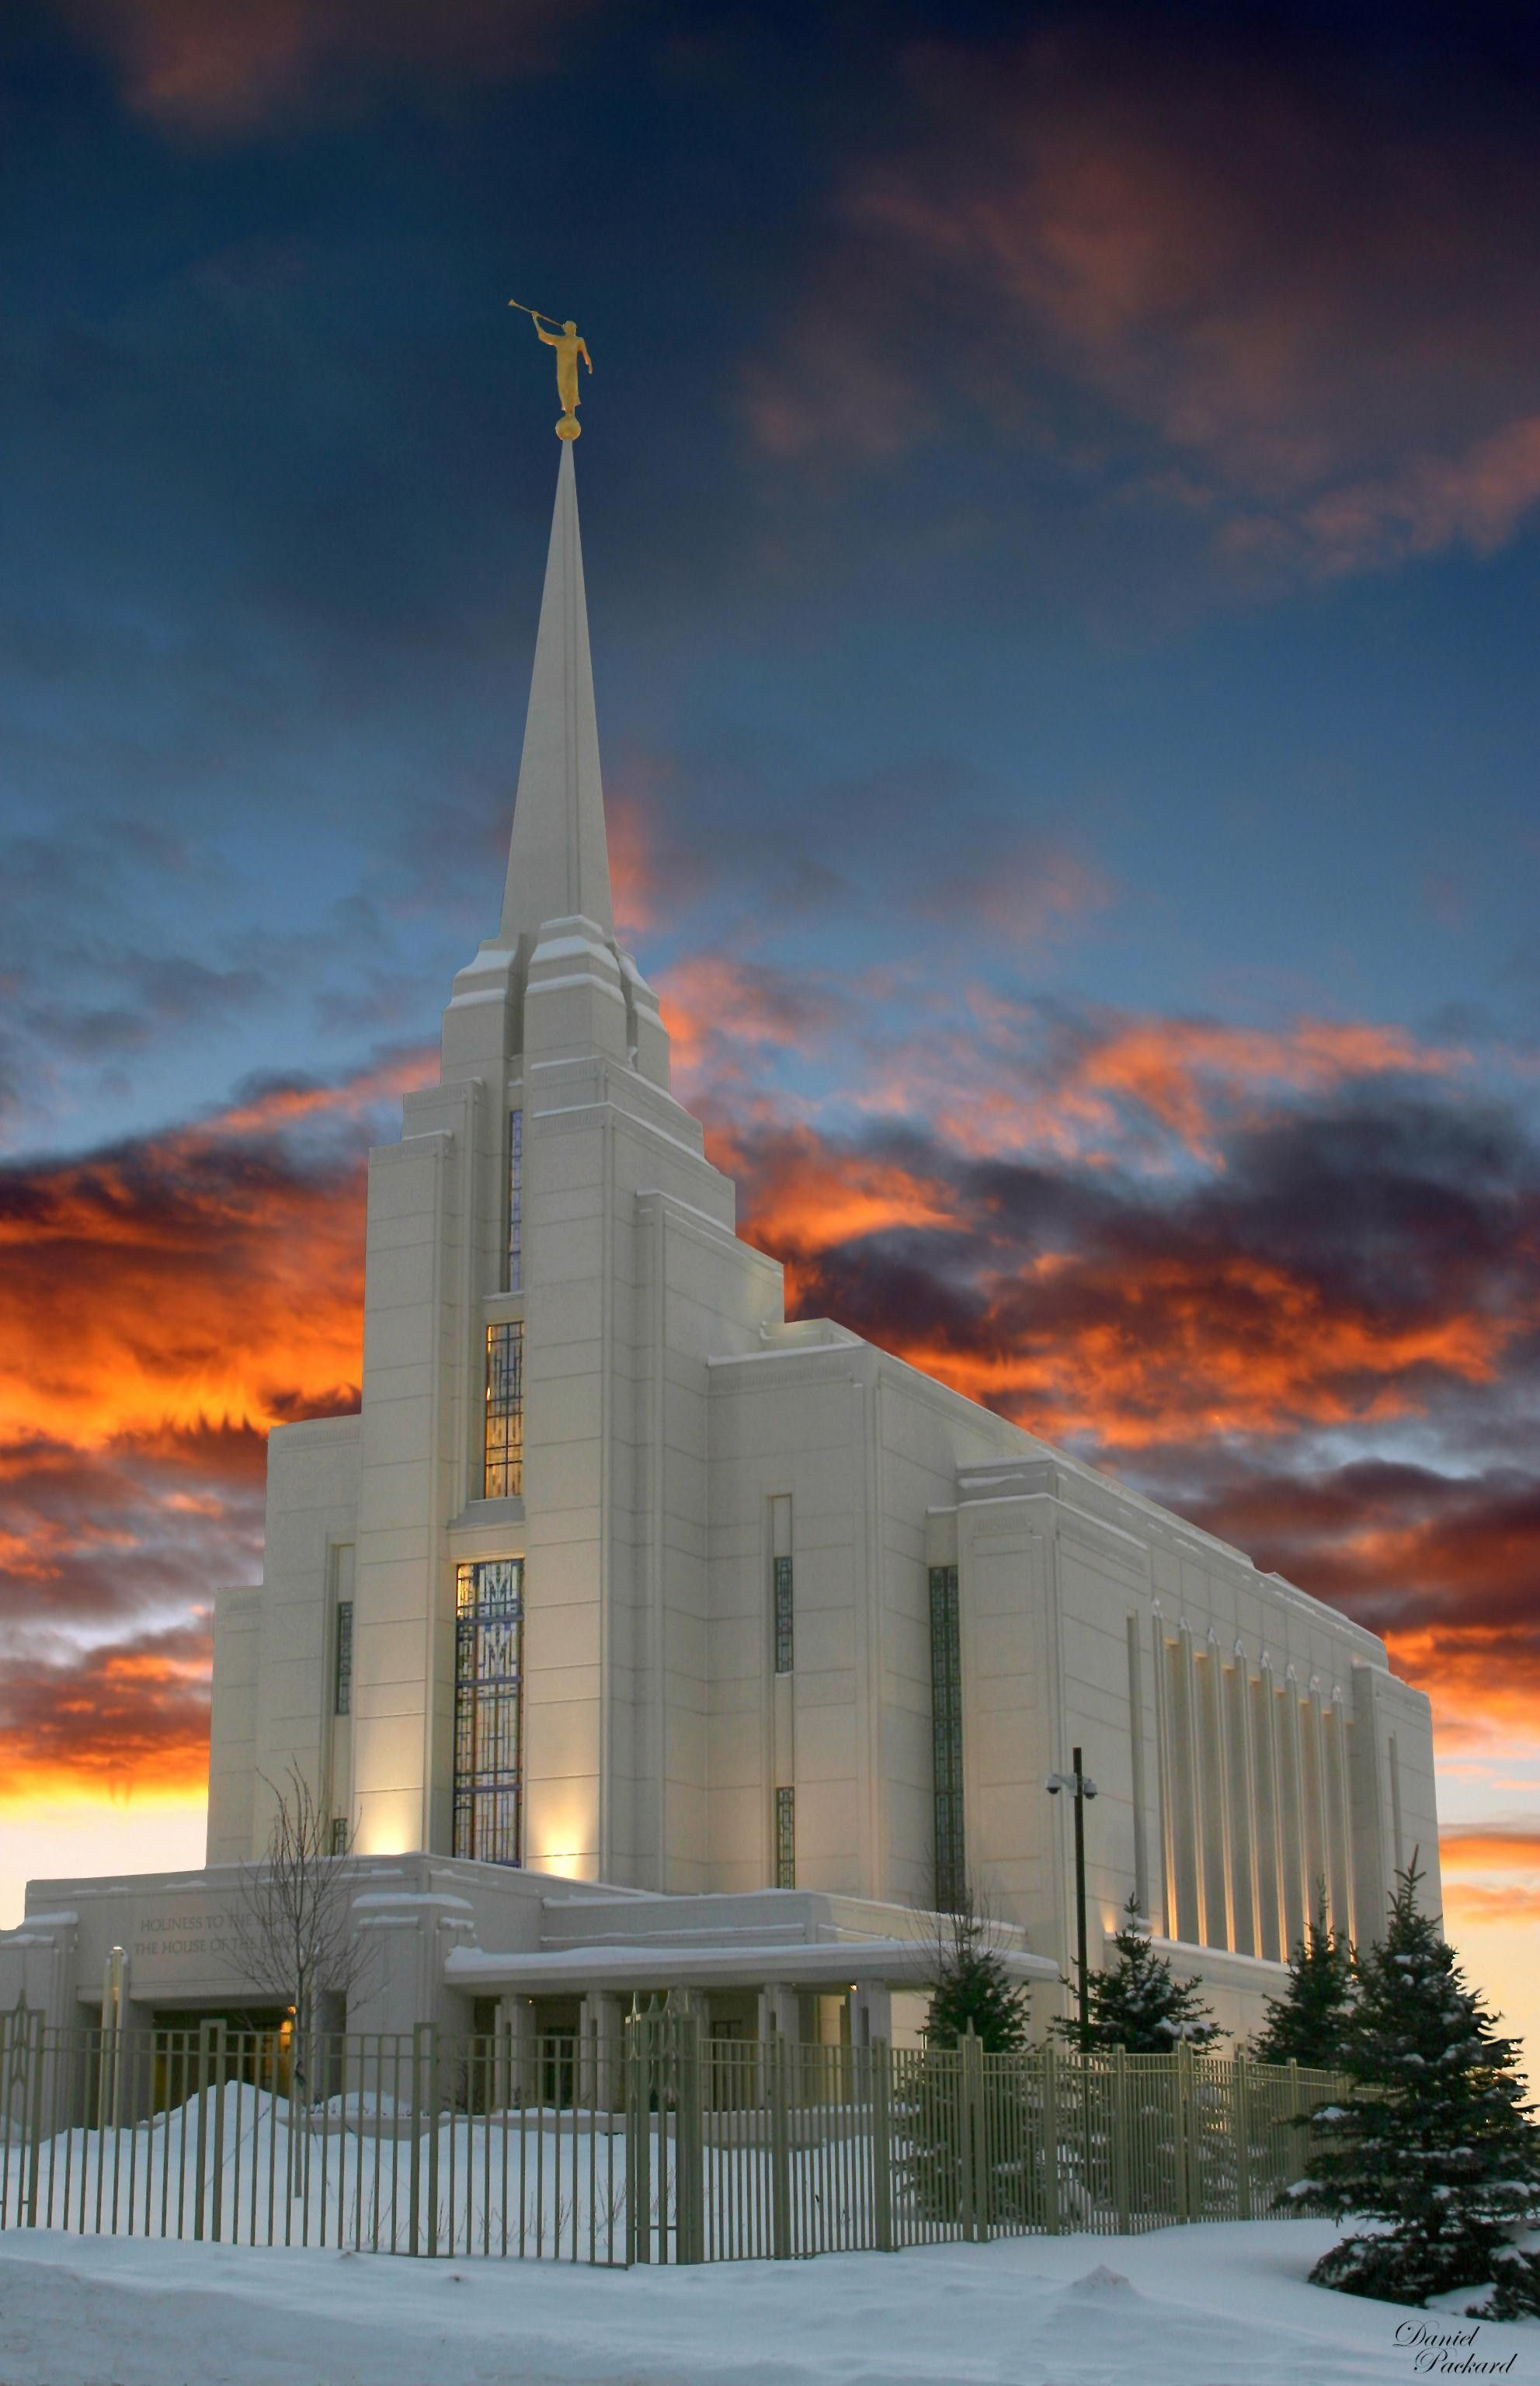 The Rexburg Idaho Temple at sunset during winter, including the entrance and scenery.